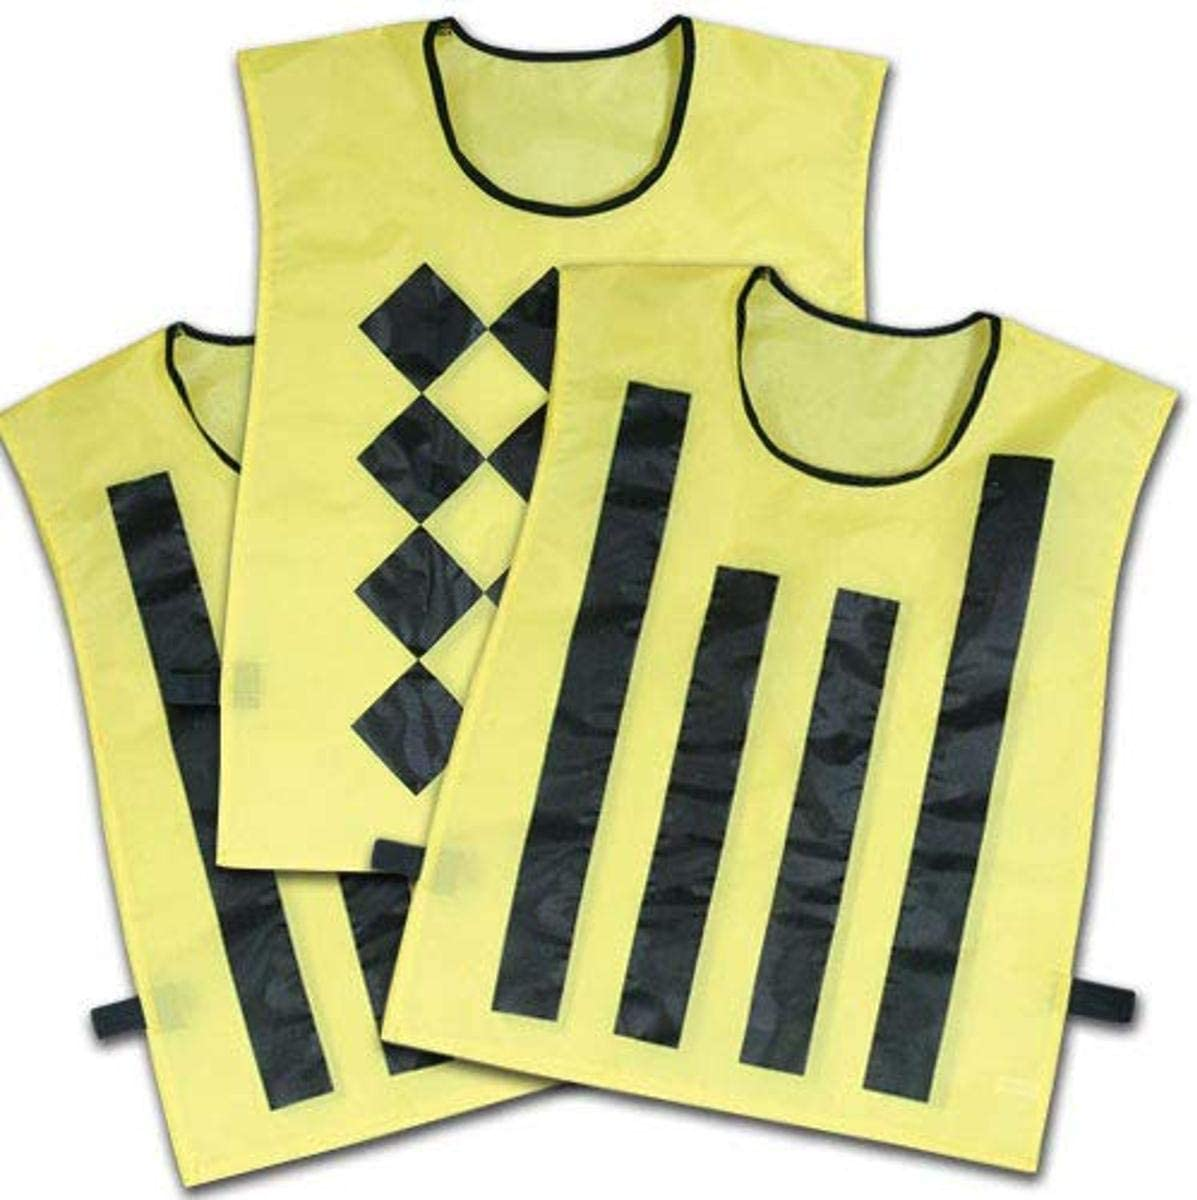 CHAMPRO Sideline Official Pinnies (Set of 3, 1 Diamond/2 Striped)